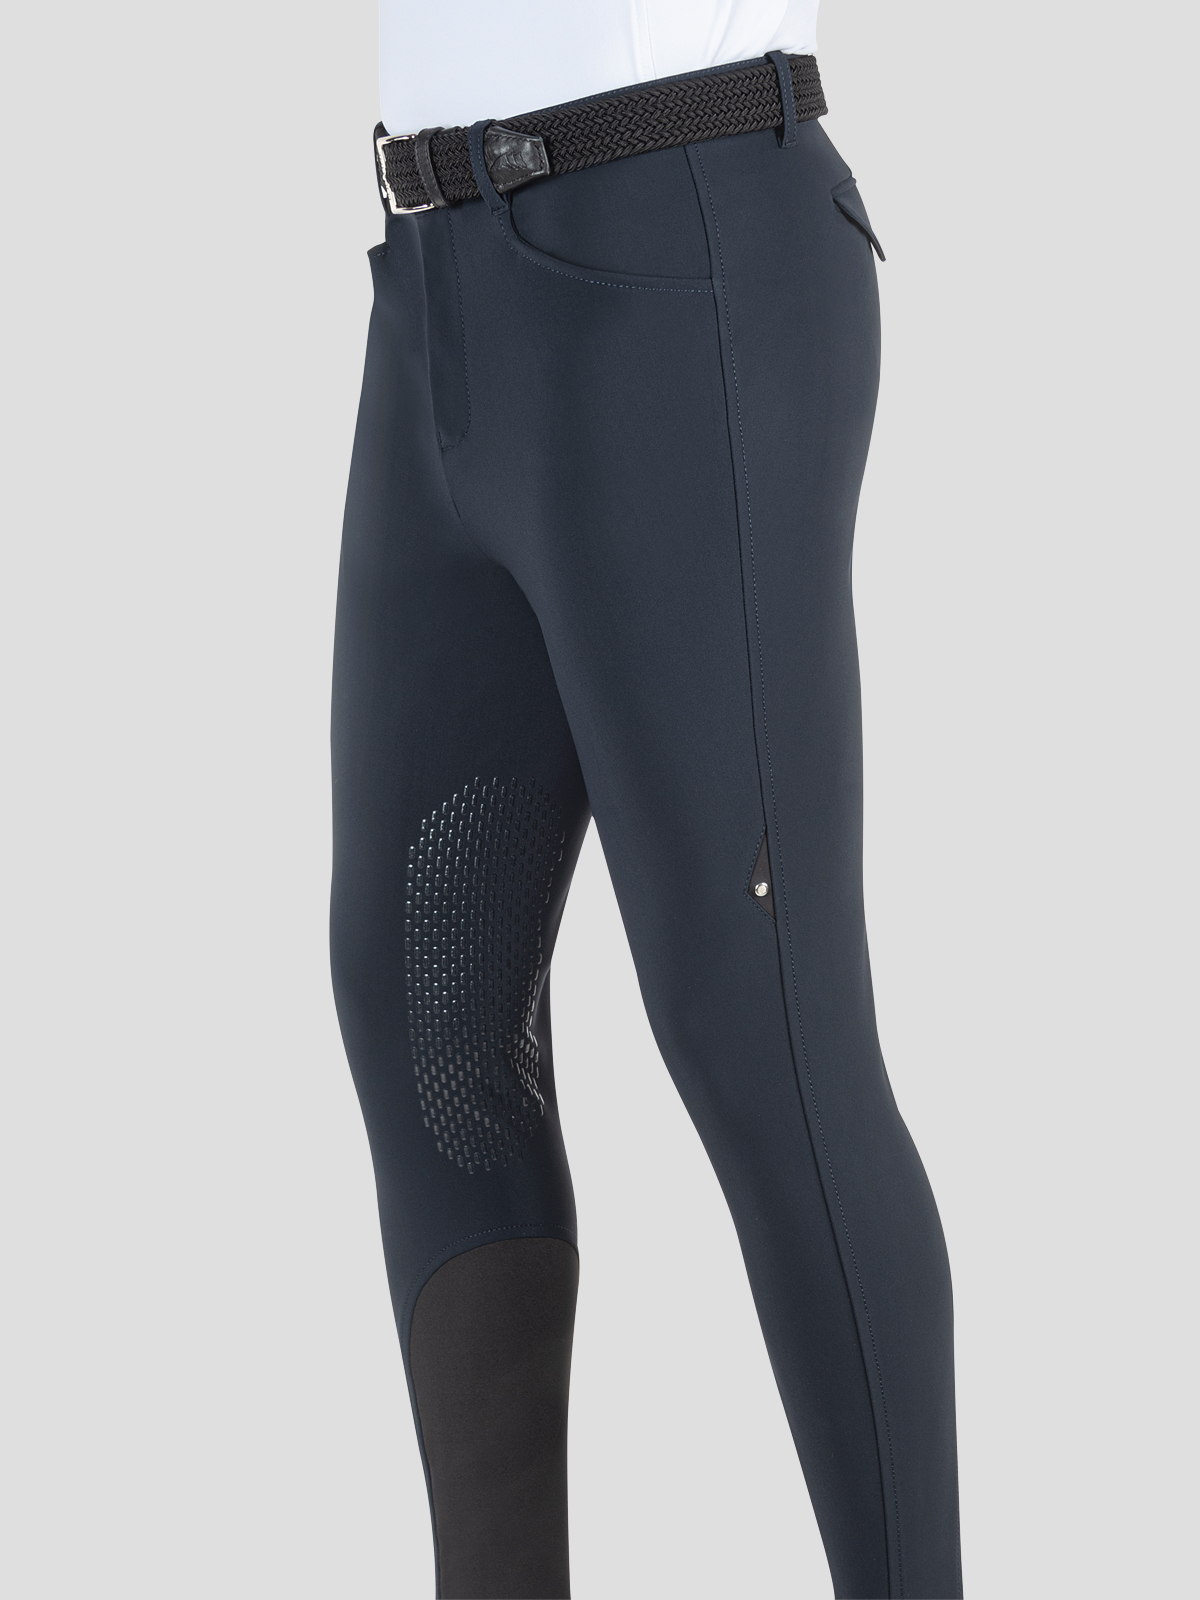 ALBERTK MEN'S RELAXED FIT KNEE GRIP RIDING BREECHES IN B-MOVE 1